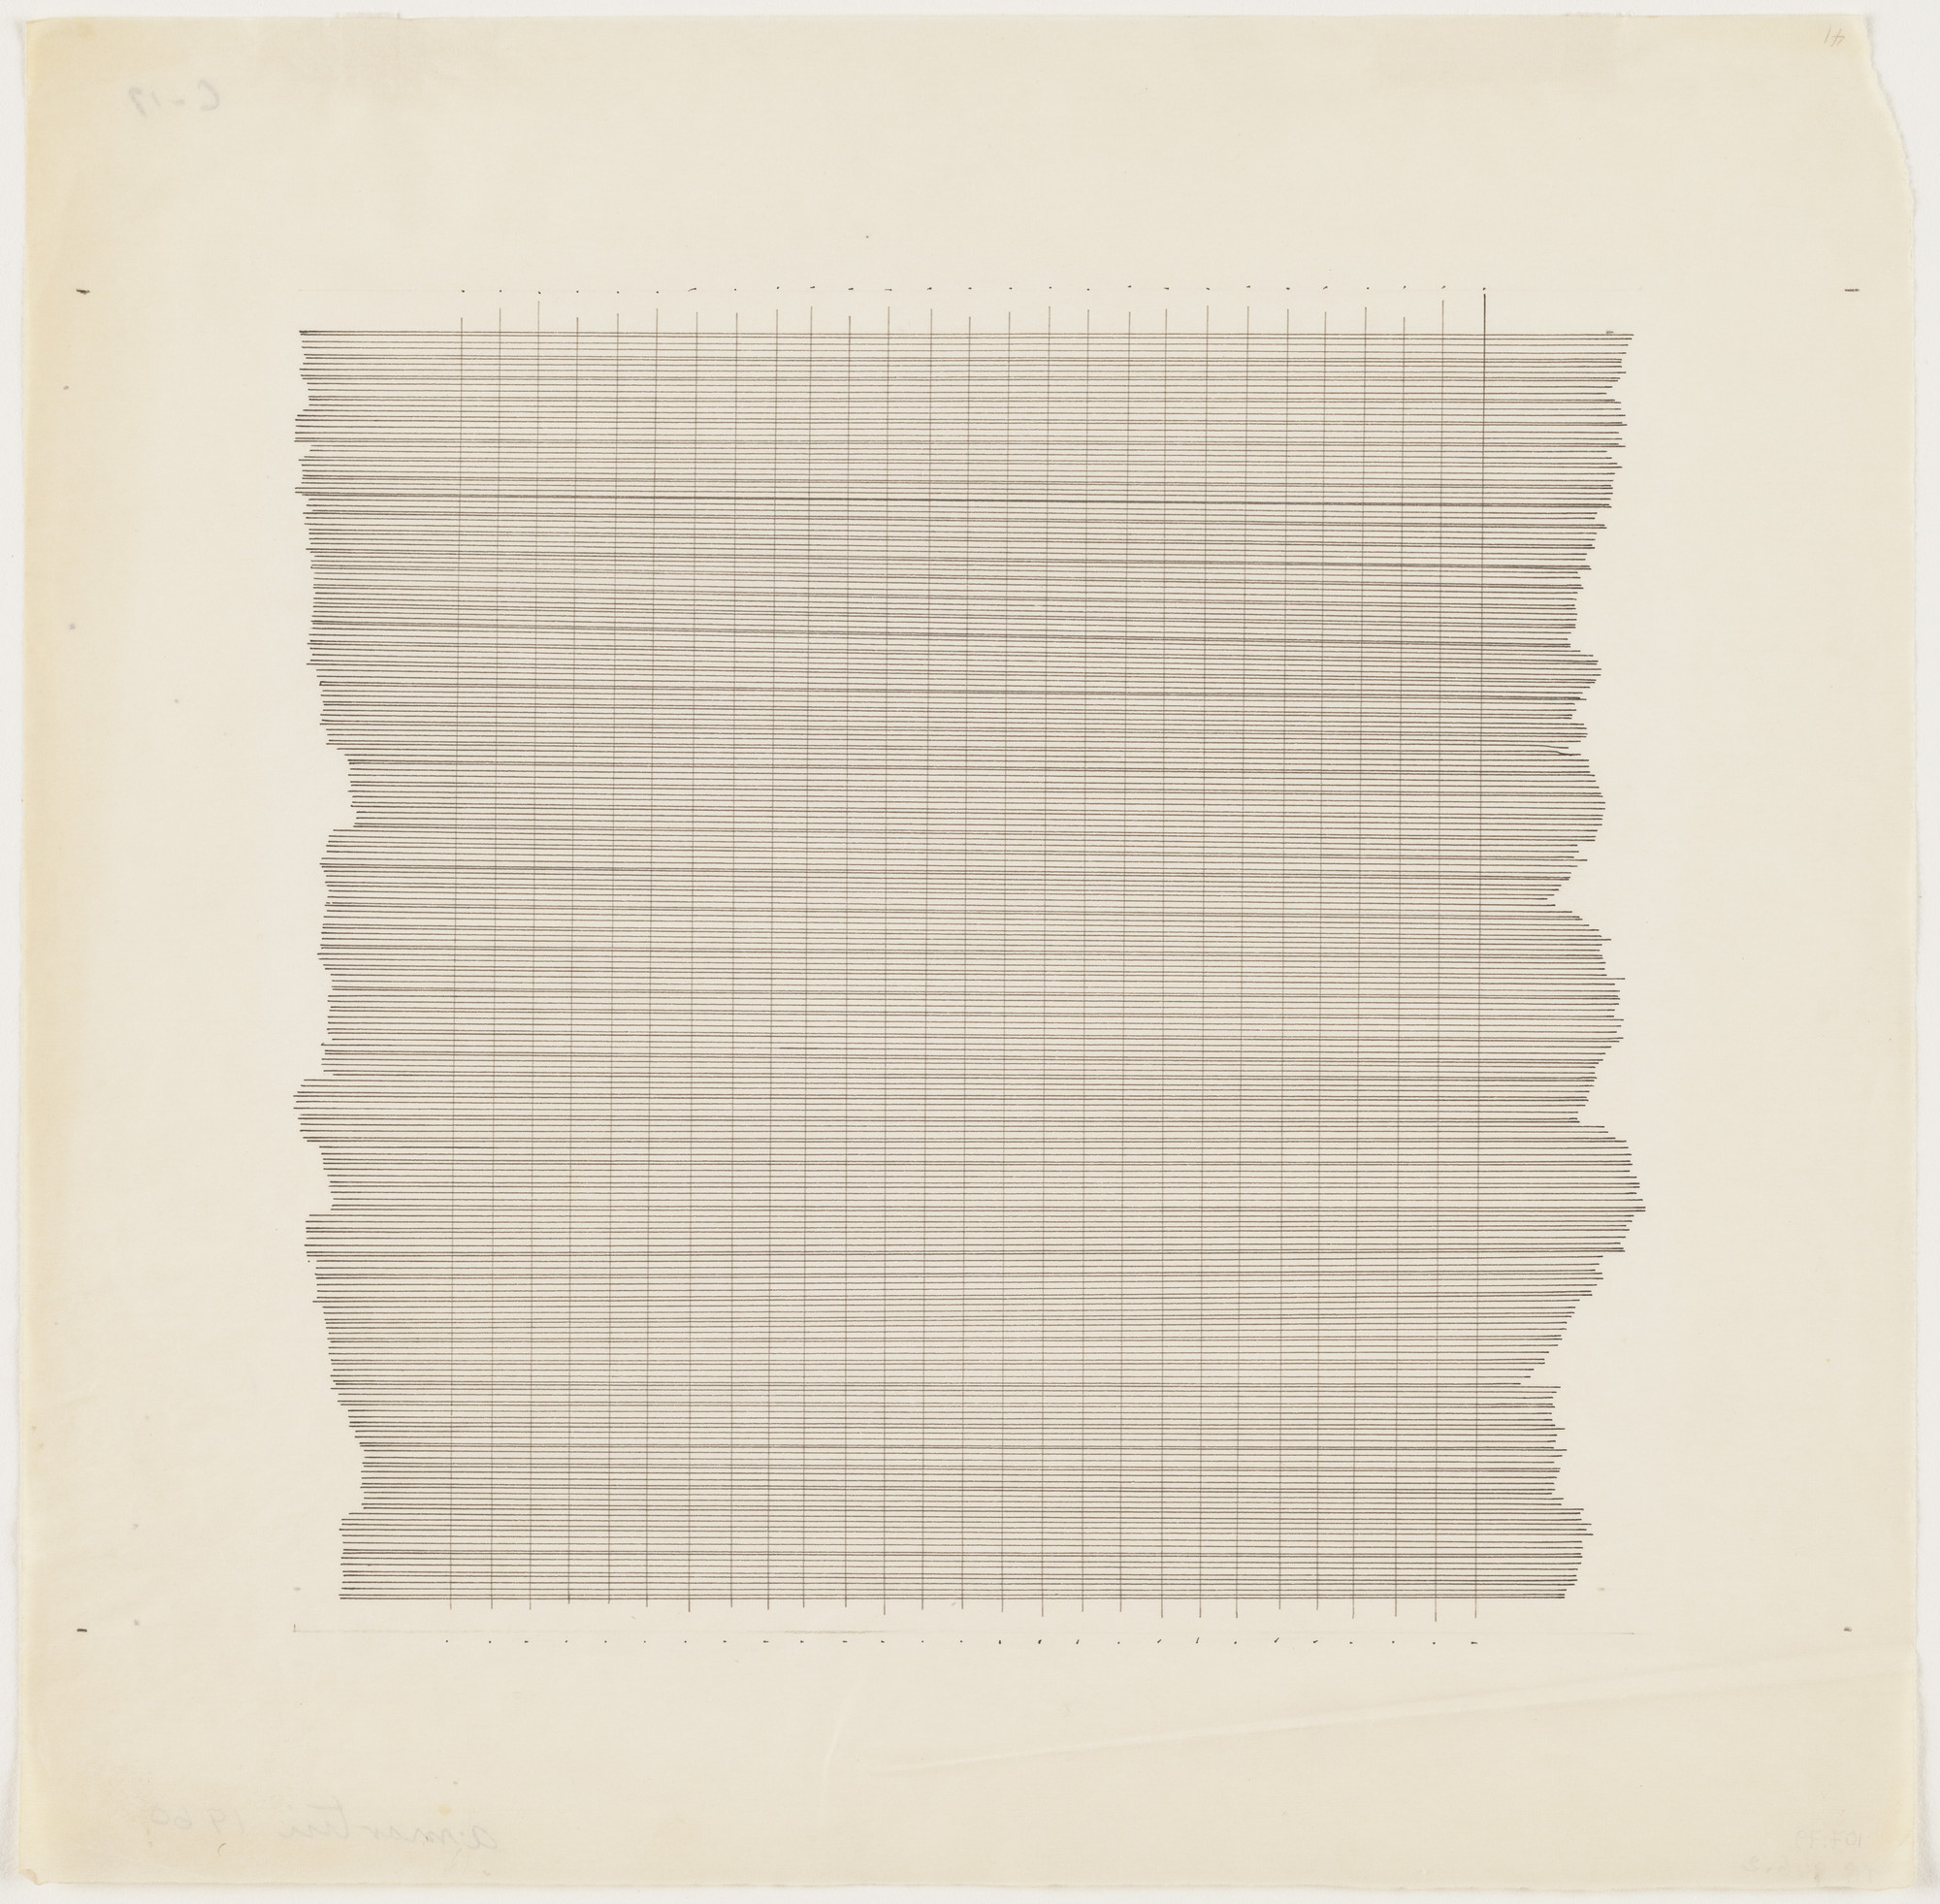 Agnes Martin. Untitled. 1960